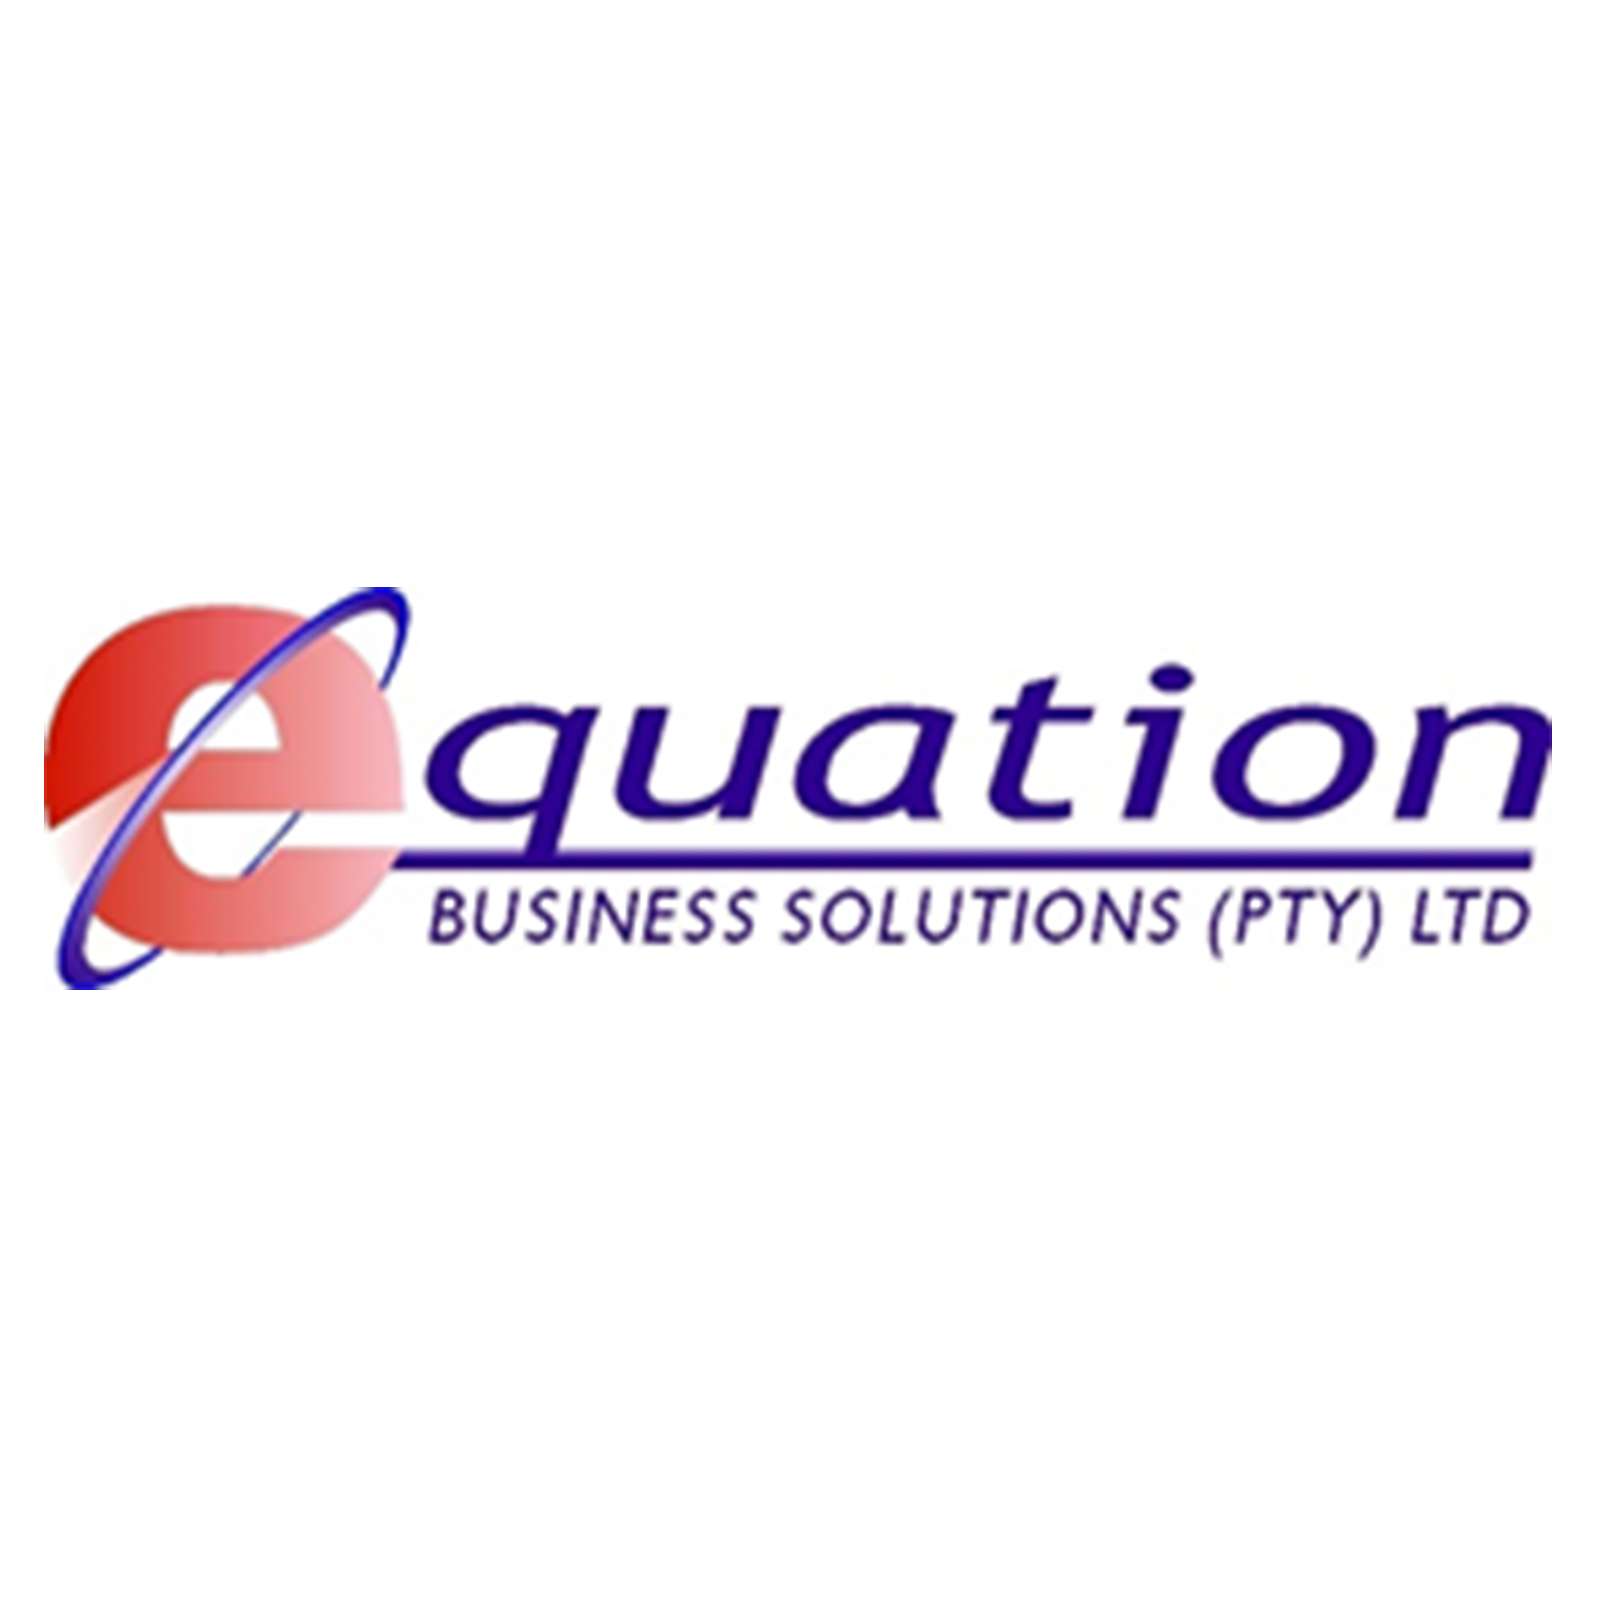 the equation logo for the realise a dream competition to support local entrepreneurs in the food industry in cape town